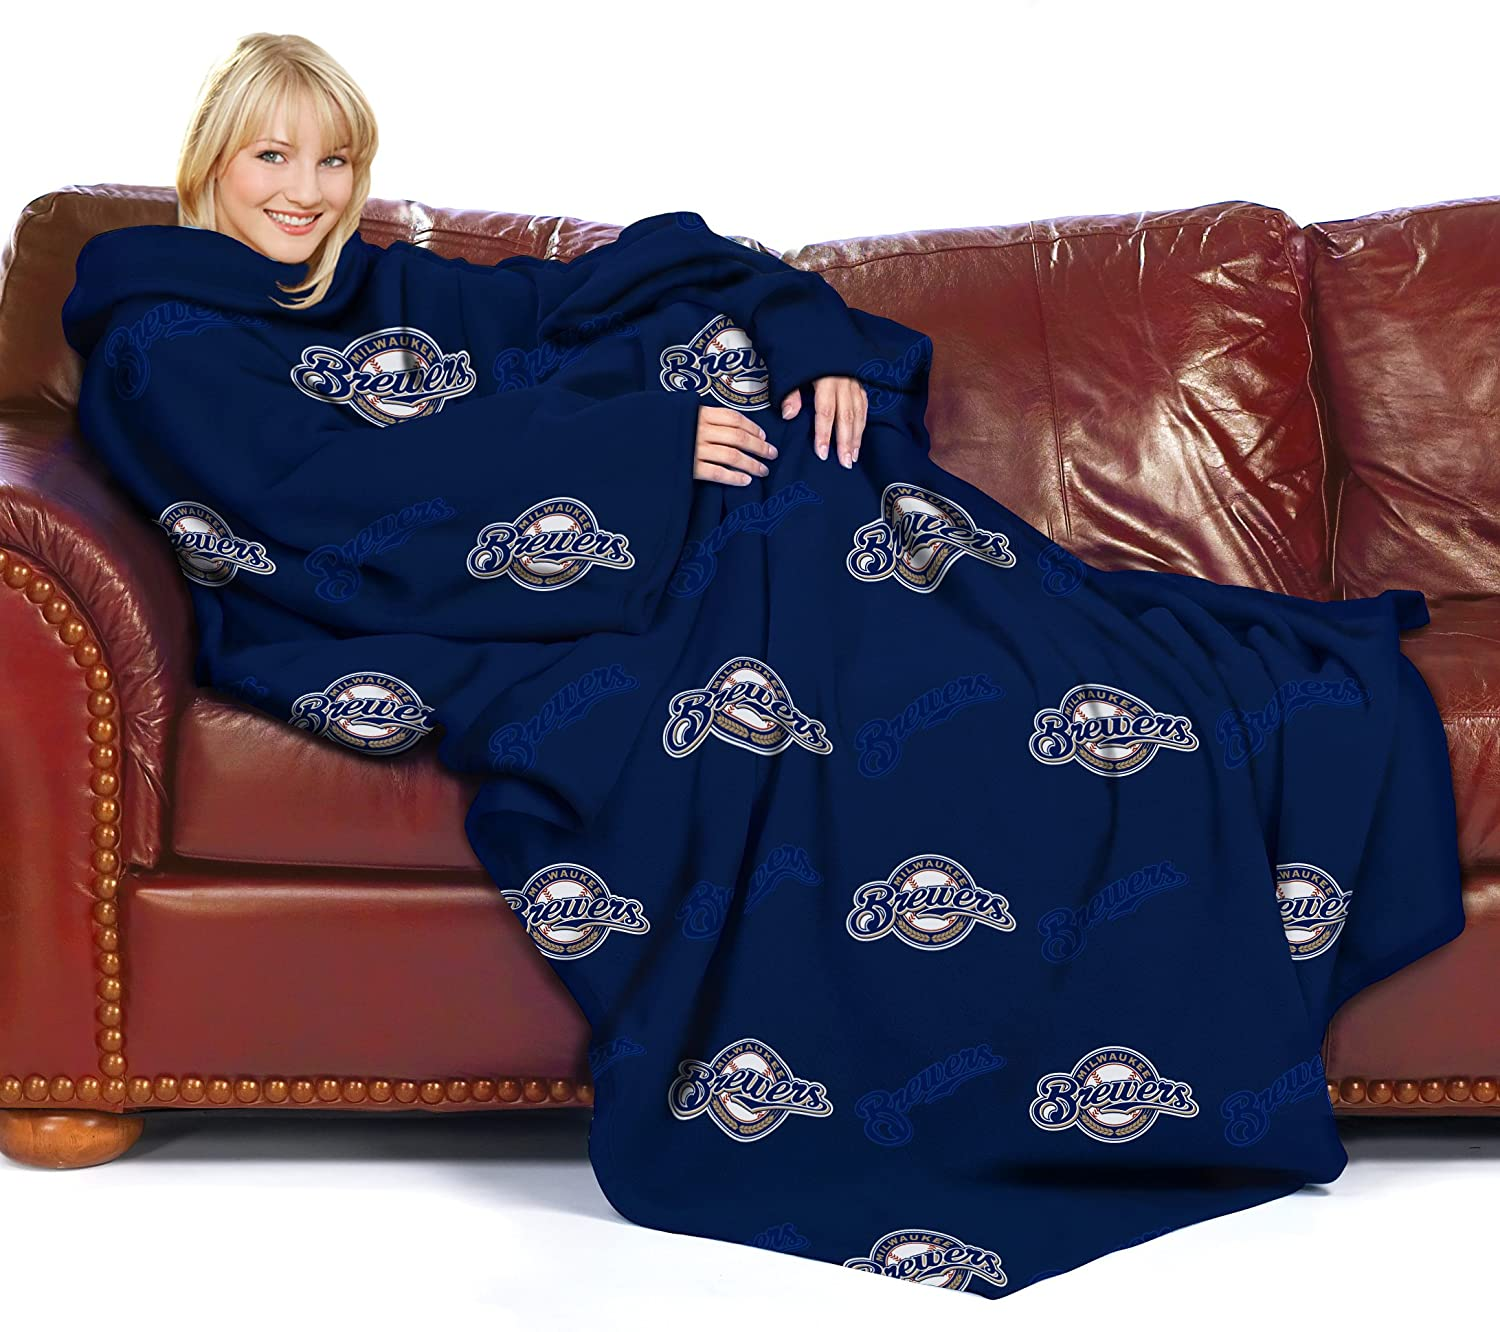 Amazon.com : MLB Milwaukee Brewers Comfy Throw Blanket with Sleeves ...